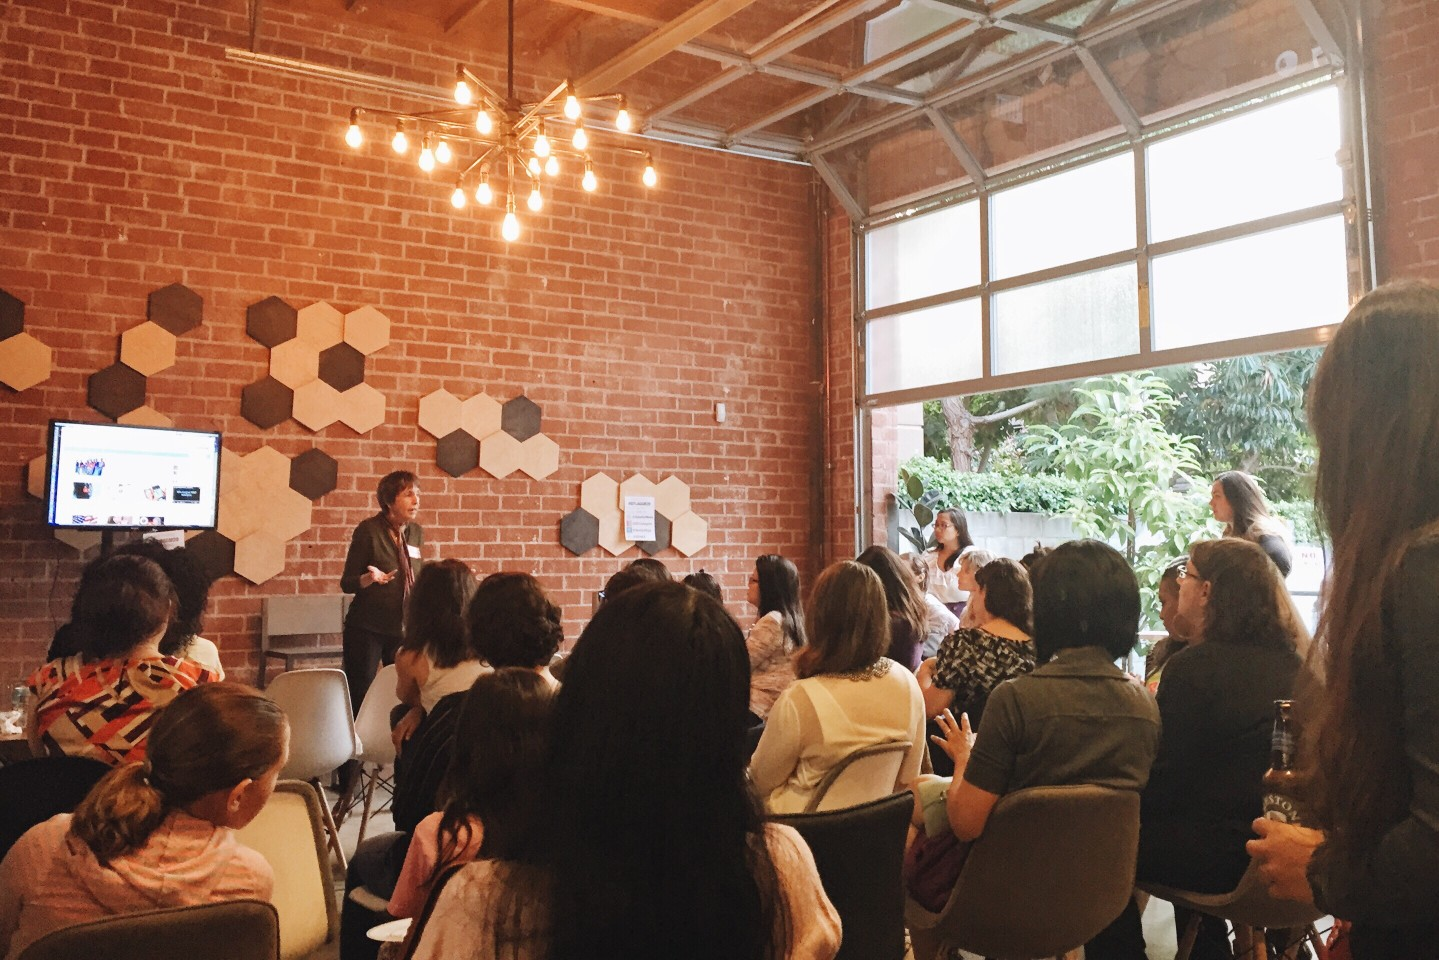 Events as a marketing tool - community engagement